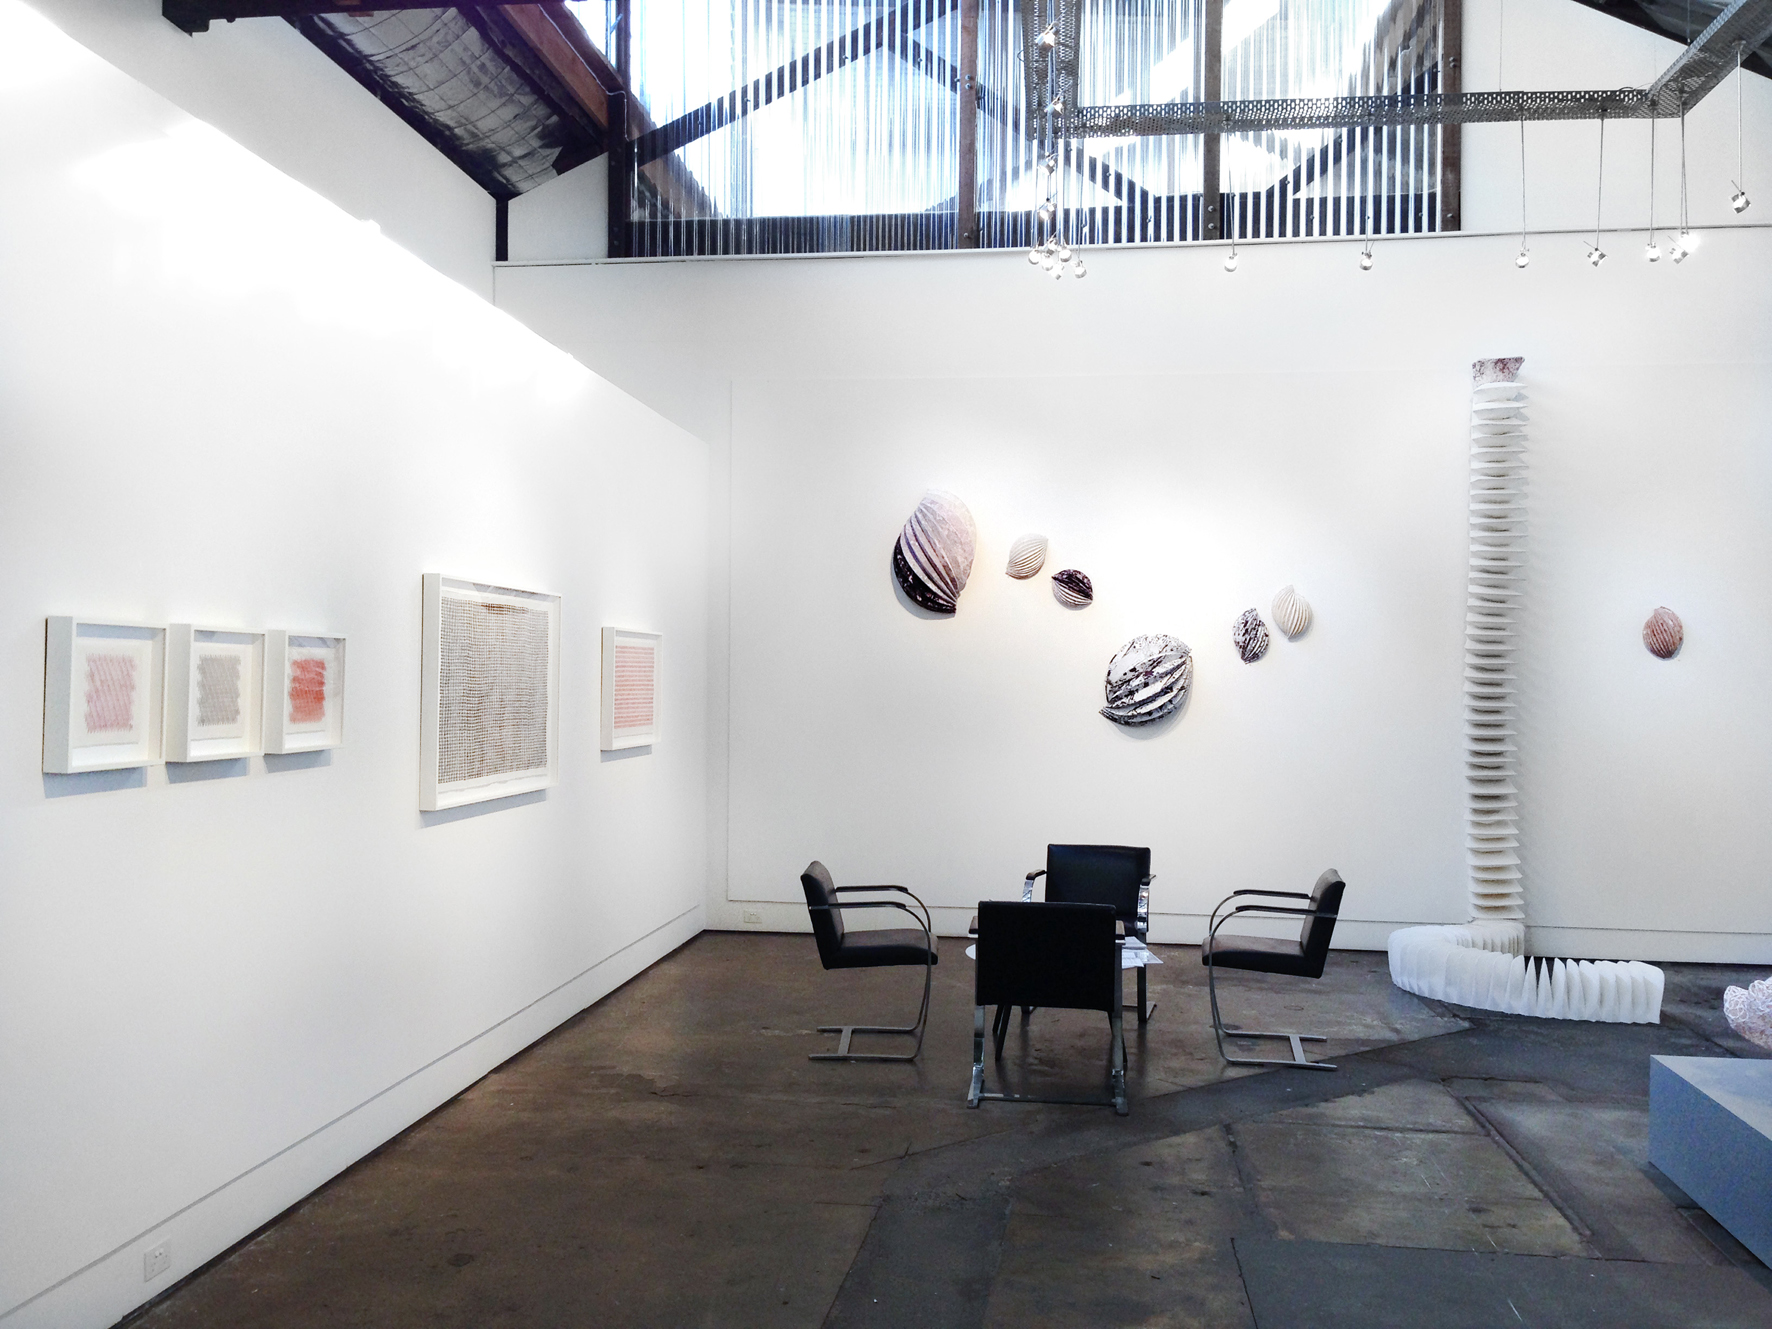 undefined objects,  2015, hand-printed linen & cotton, sewing thread, machine and hand sewn, dimensions variable, from  A Piece of String Exhibition  at Brenda May Gallery, Sydney. Photo courtesy of Brenda May Gallery.